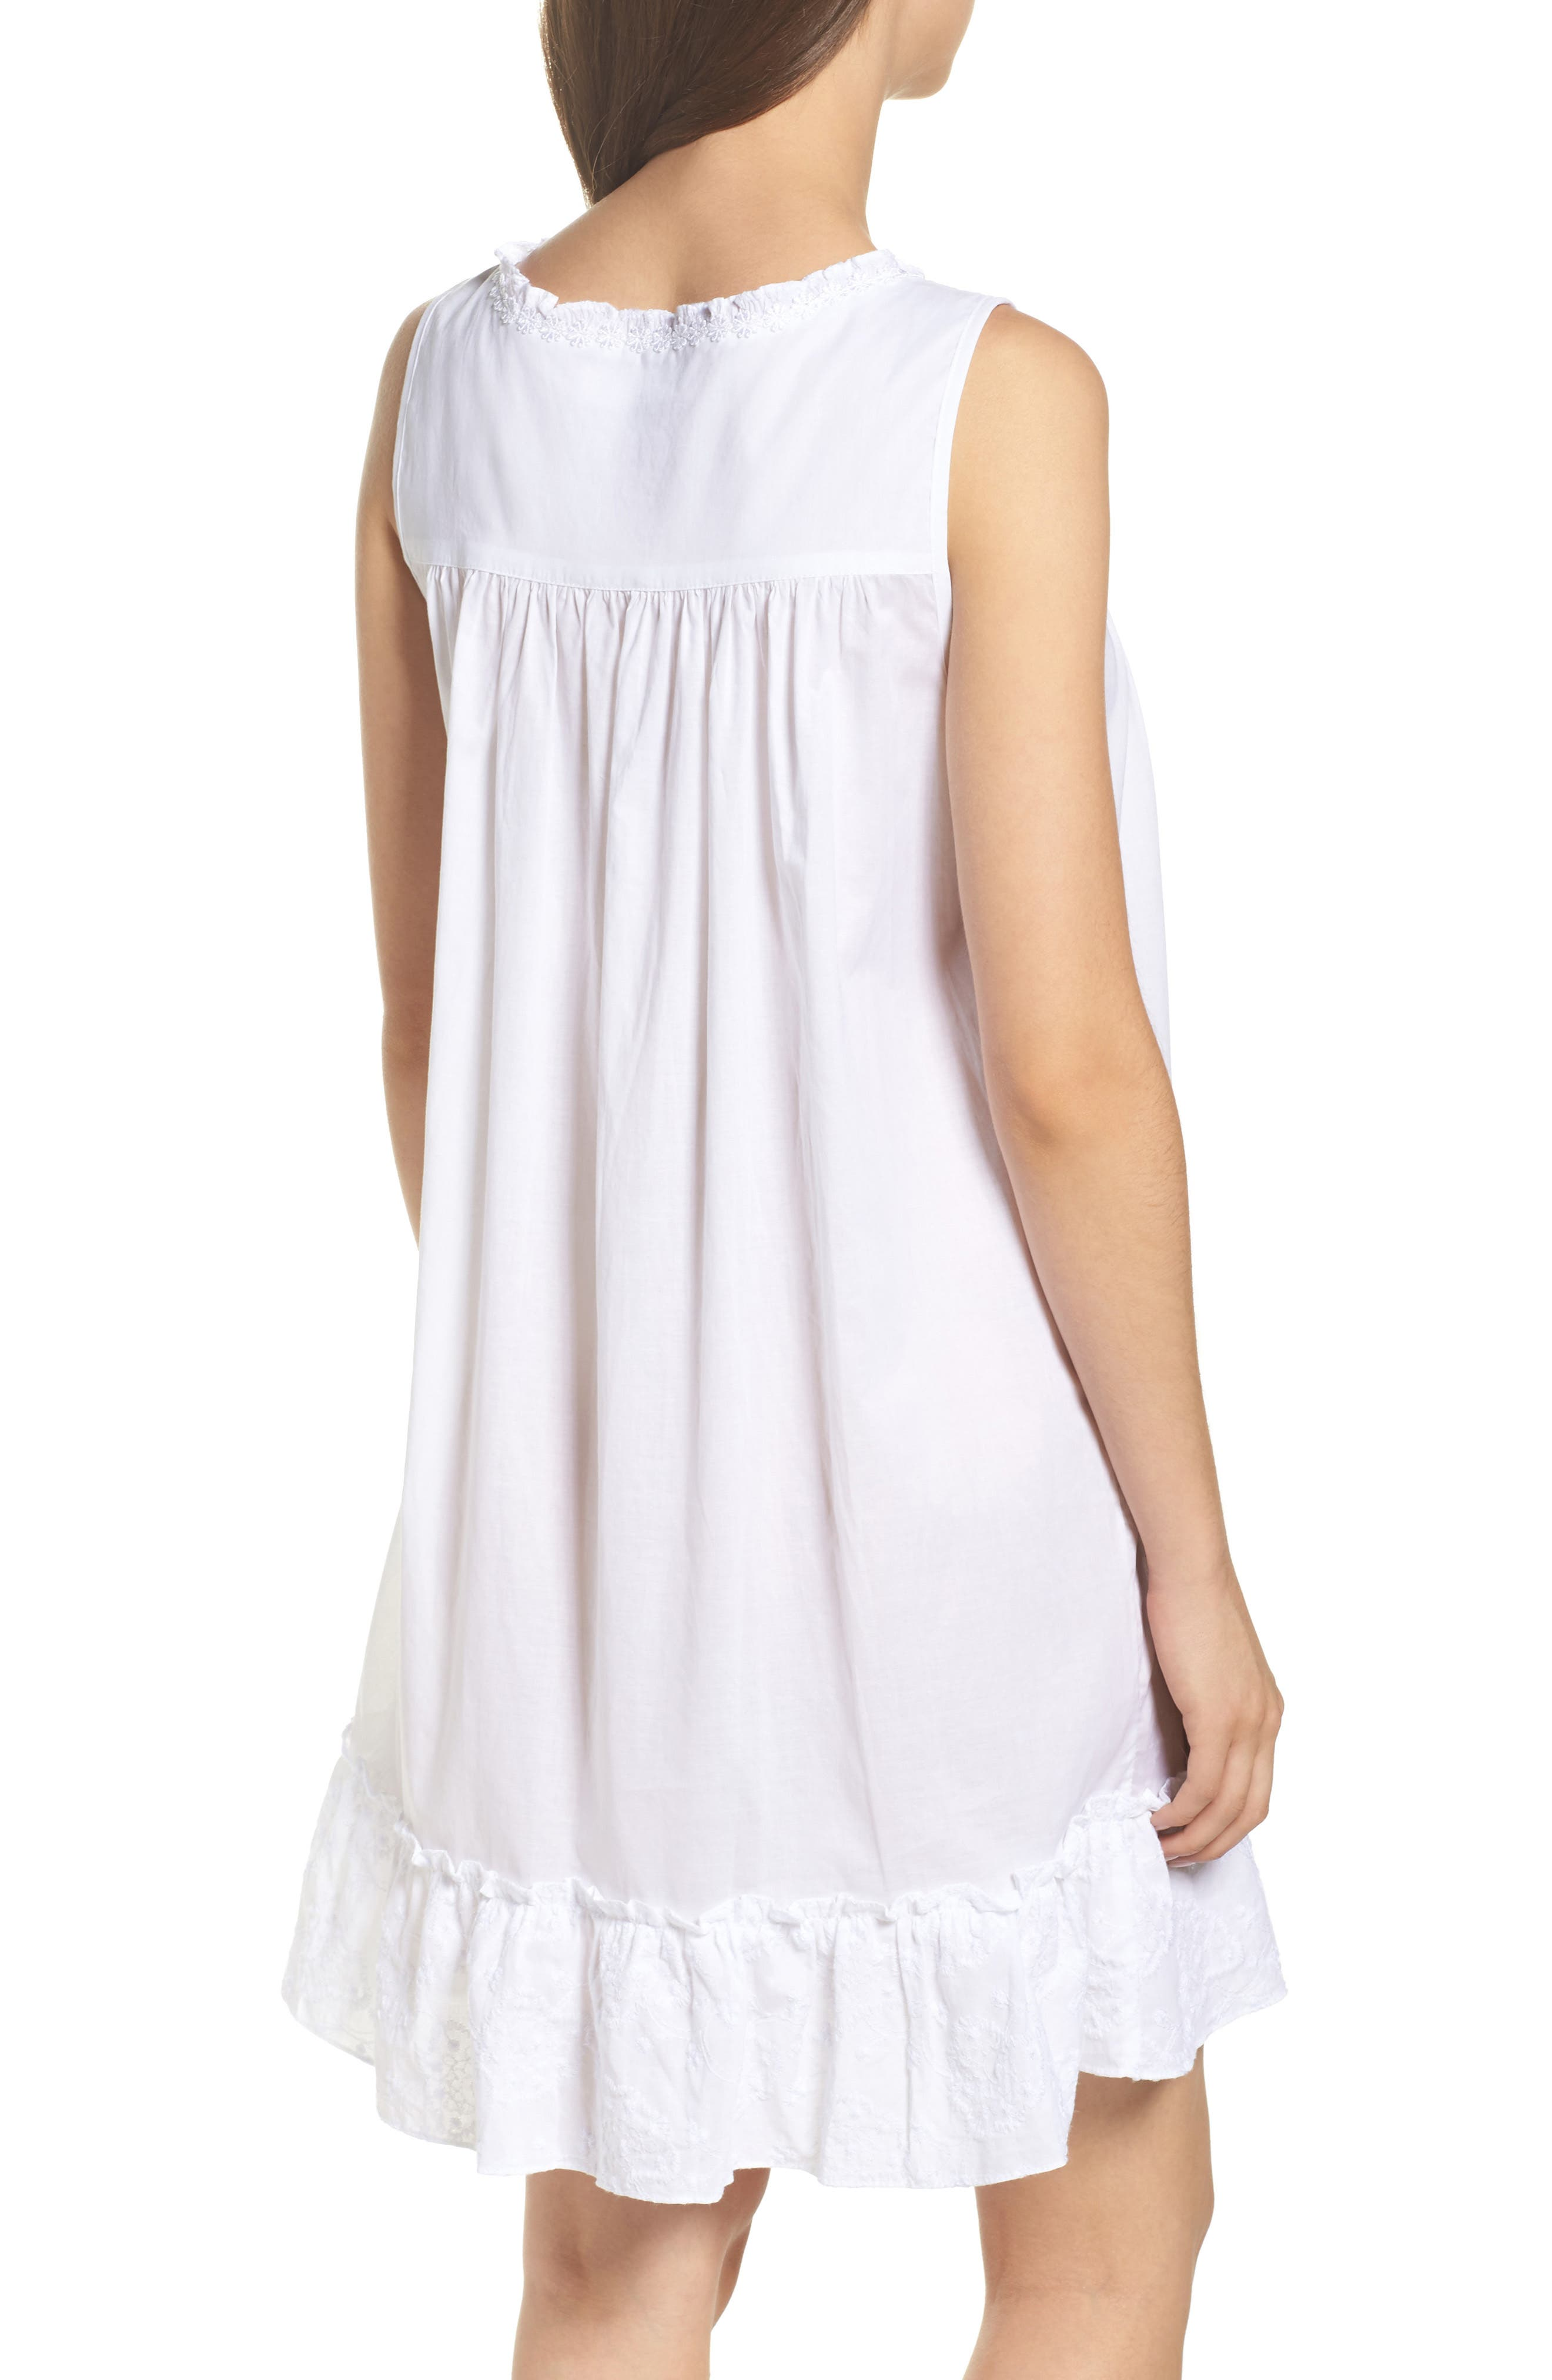 Embroidered Cotton Nightgown,                             Alternate thumbnail 2, color,                             White Floral Embroidery